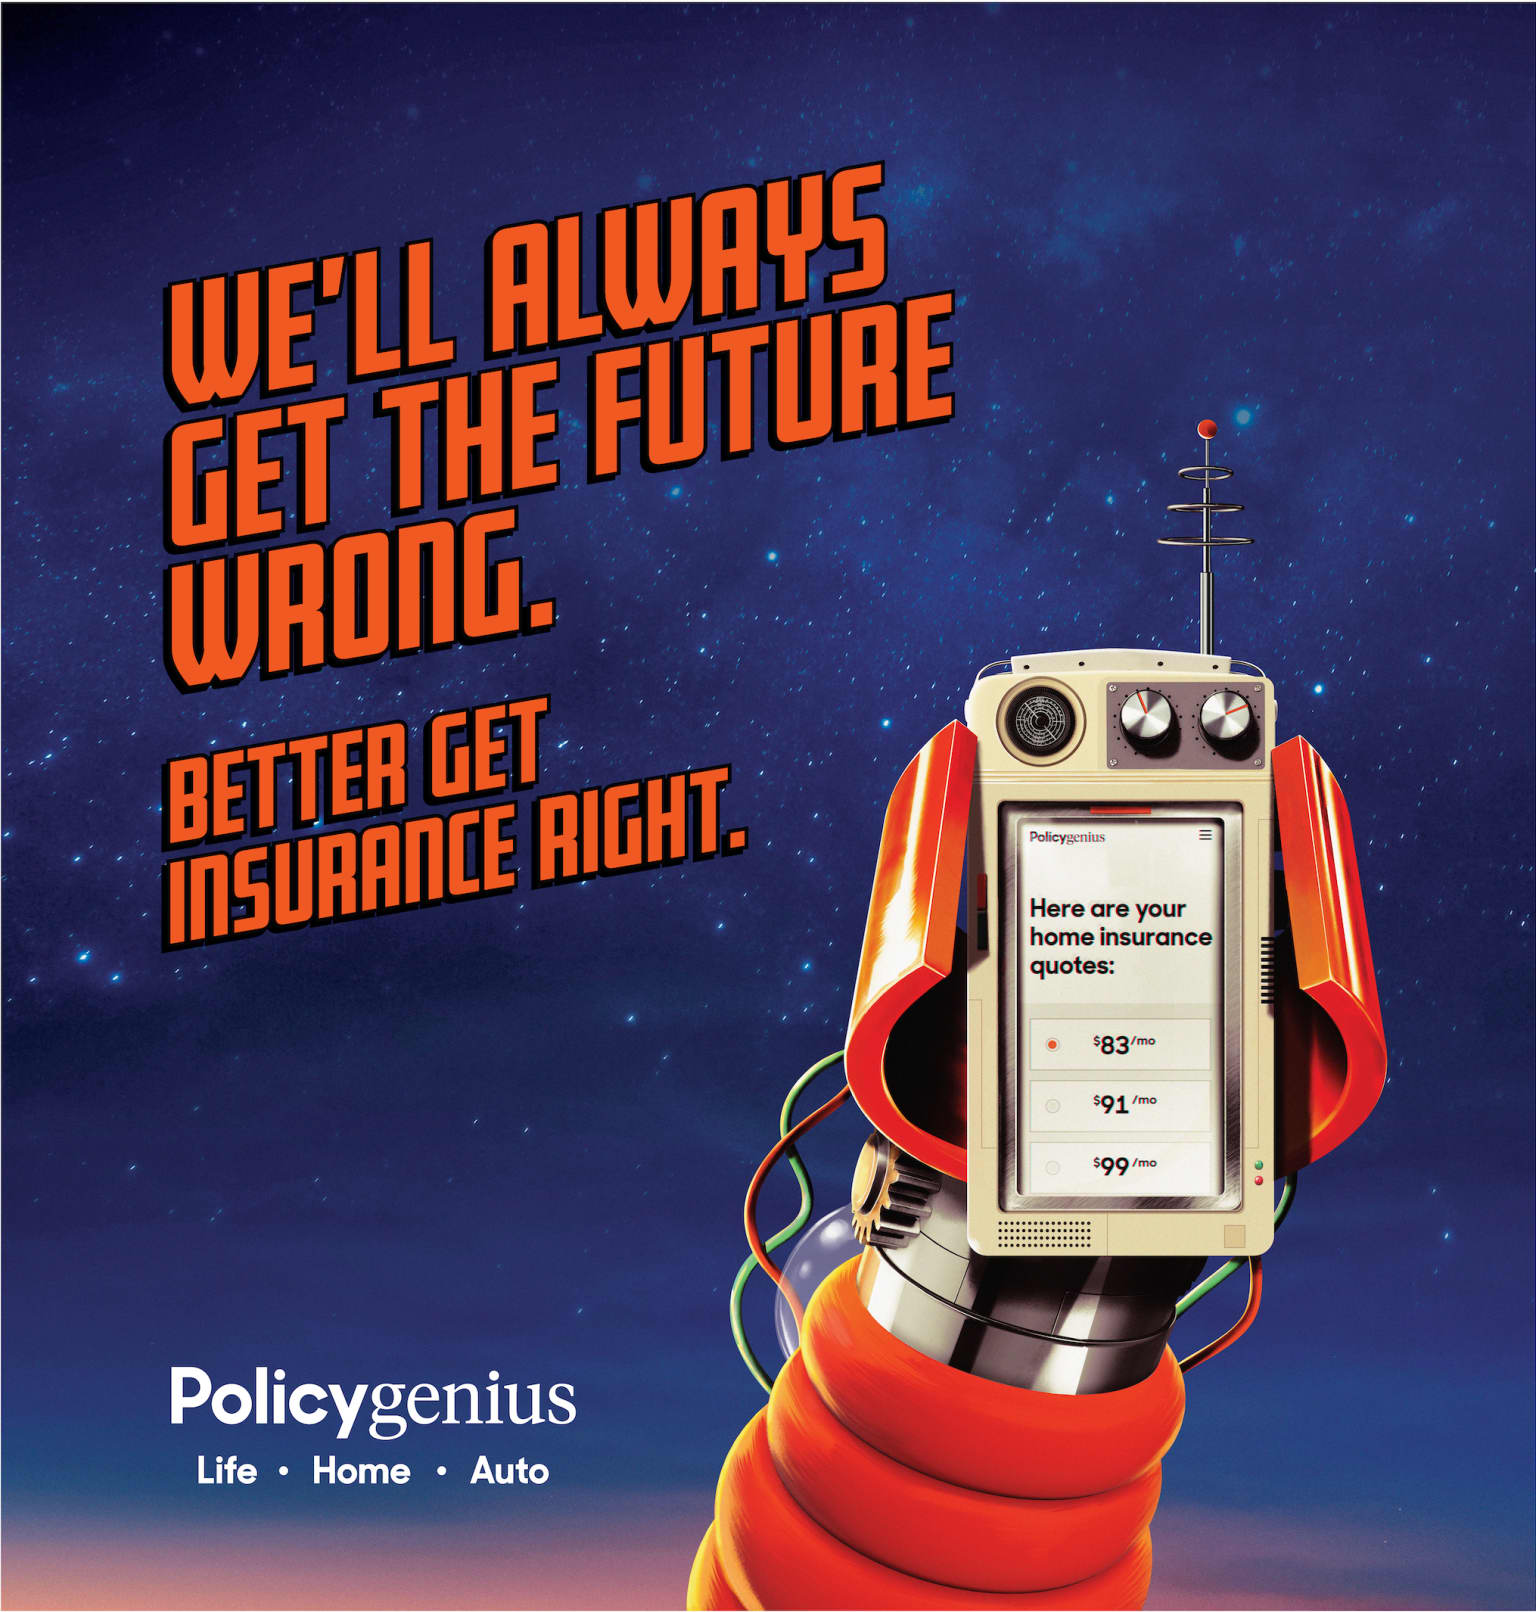 Policygenius: We'll always get the future wrong